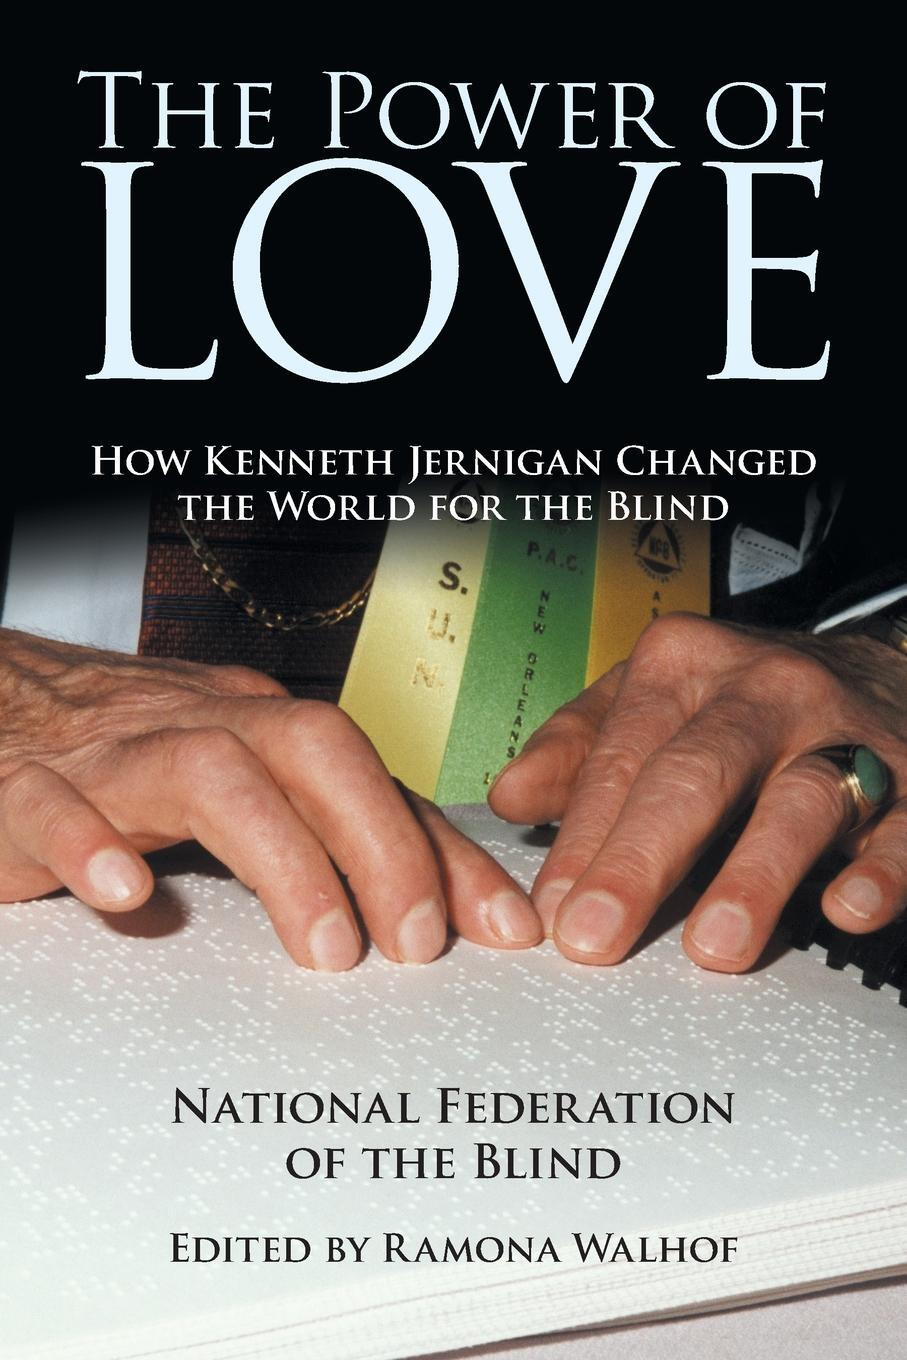 The Power of Love. How Kenneth Jernigan Changed the World for the Blind